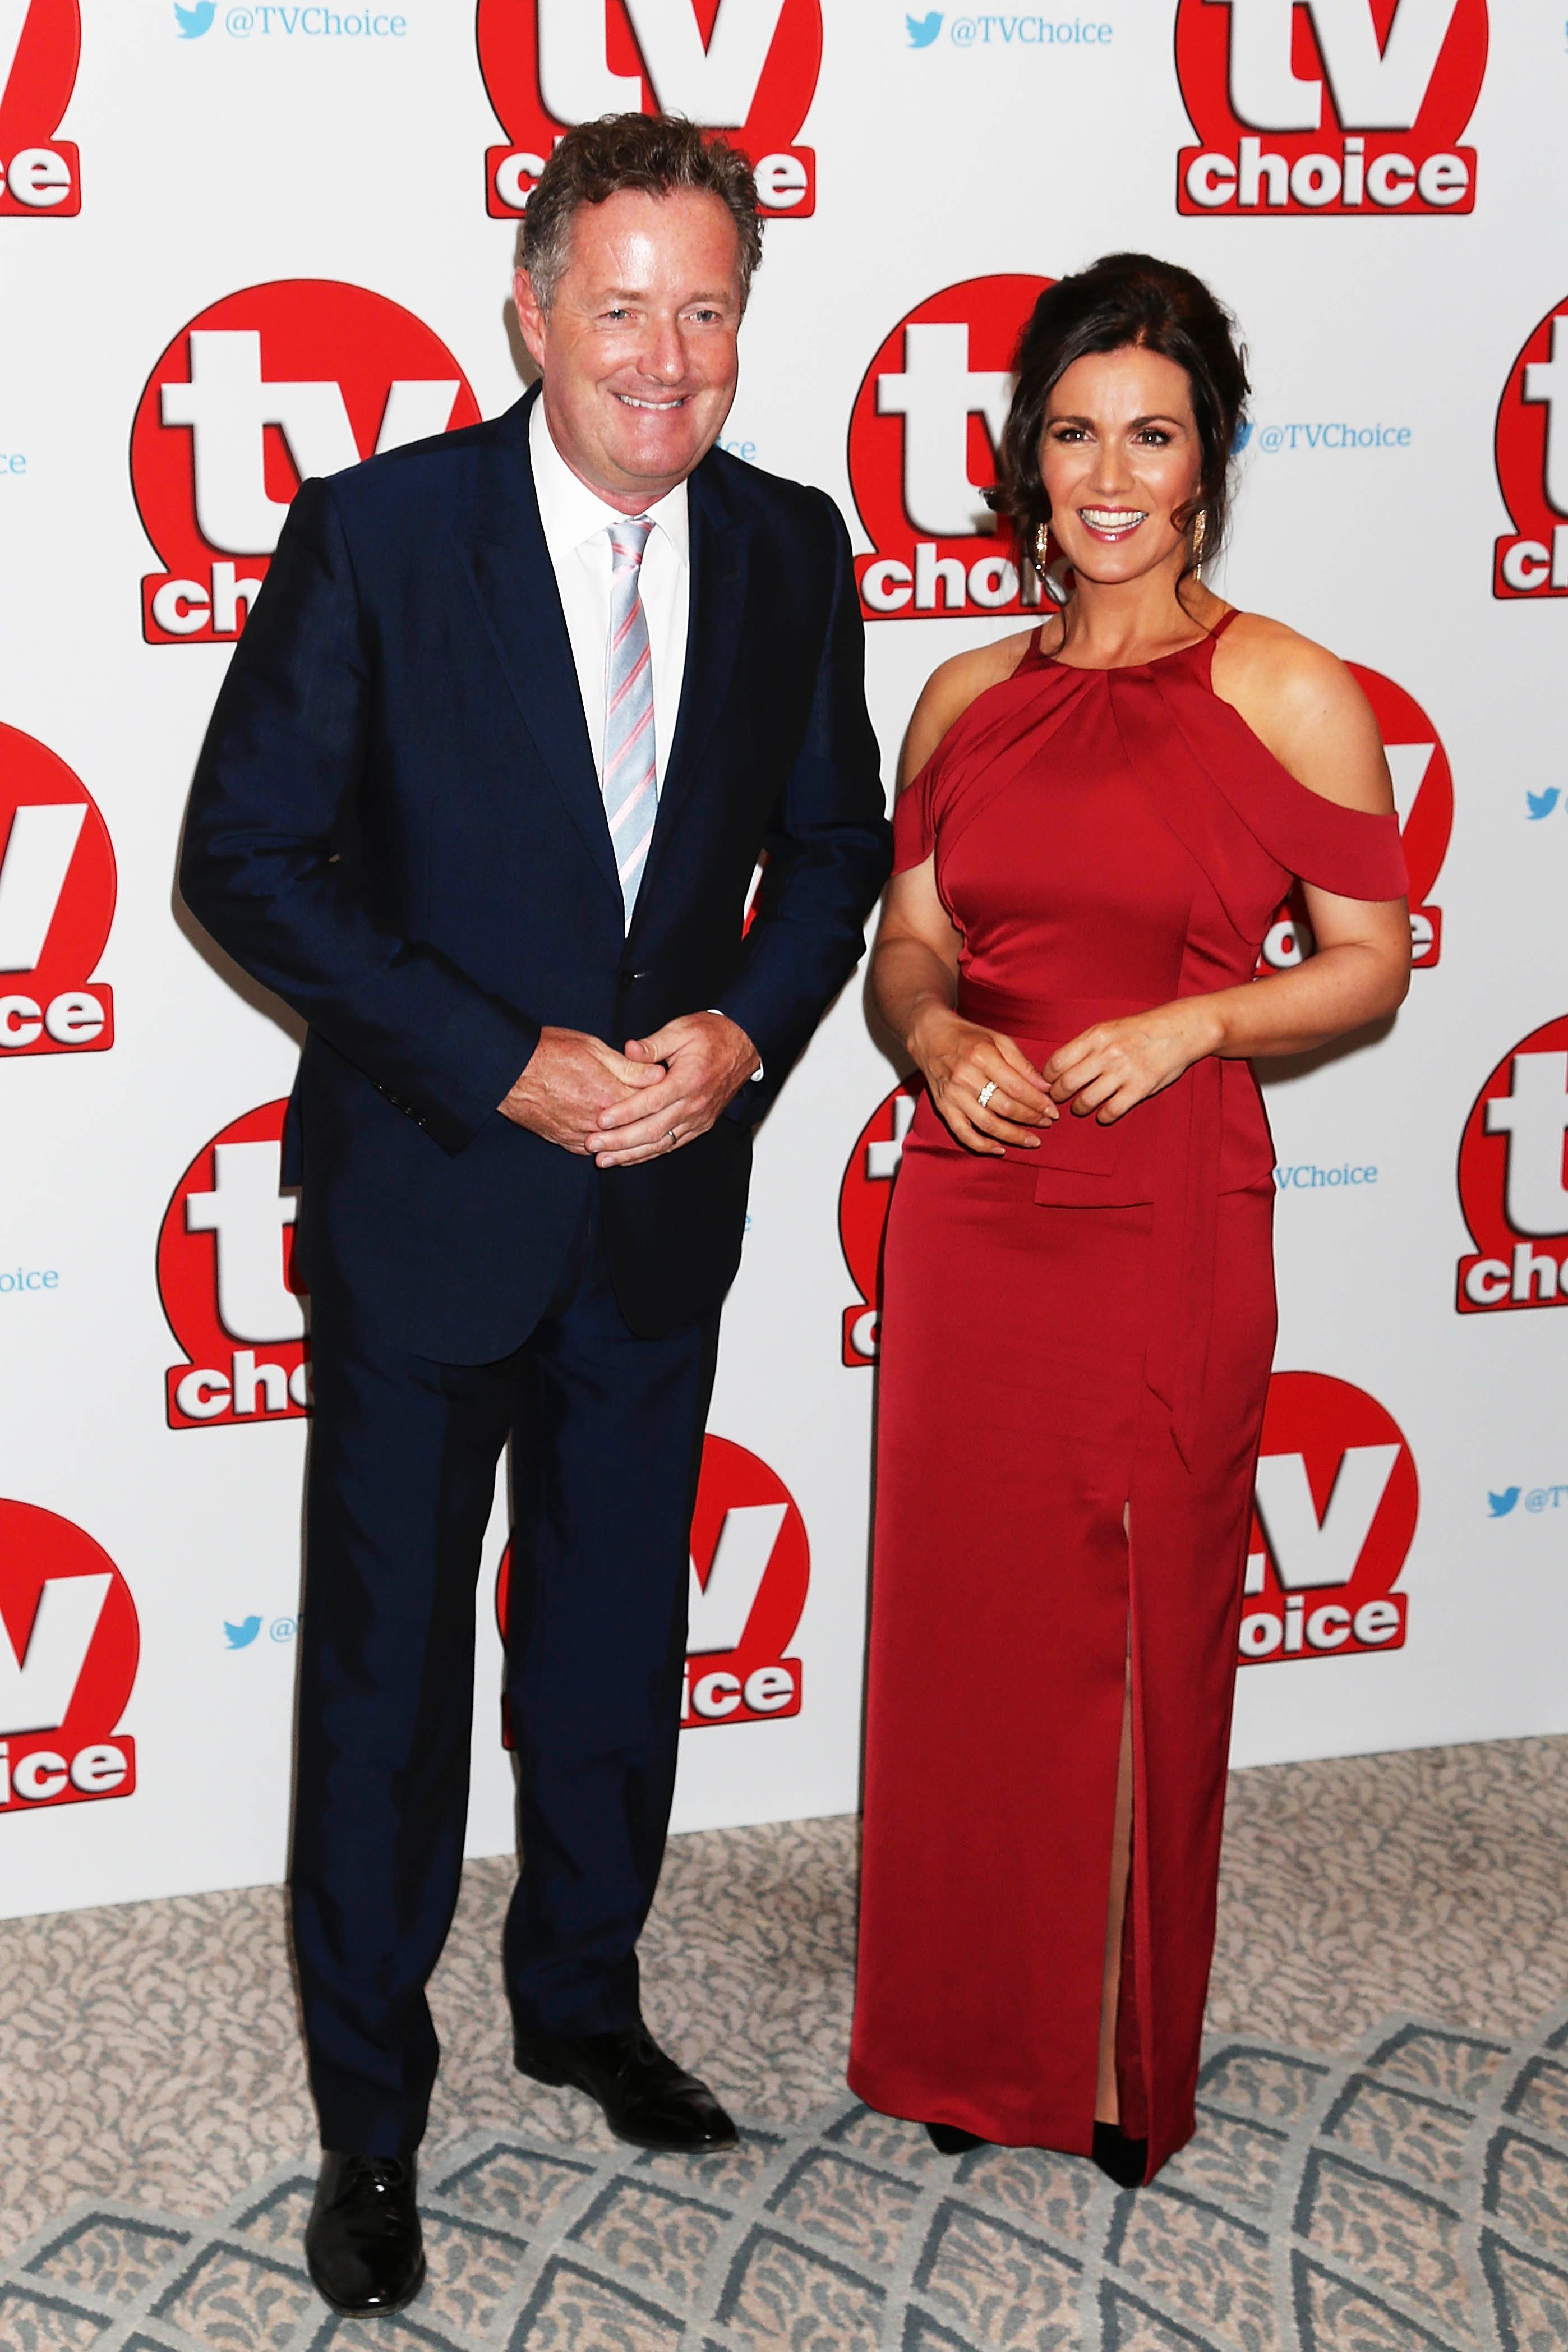 Susanna Reid 'Turned Down' Cameo In 'Love Actually' Sequel Due To Piers Morgan